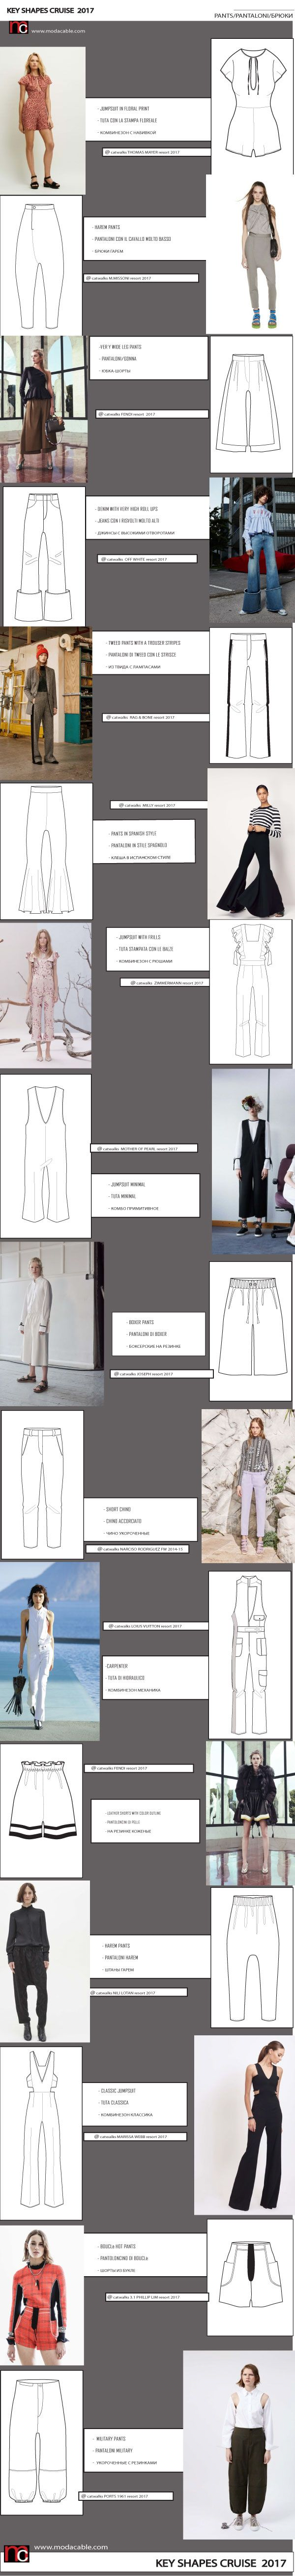 resort 2017 key shapes are already on modacable.com, subscribe to unlock all the pages